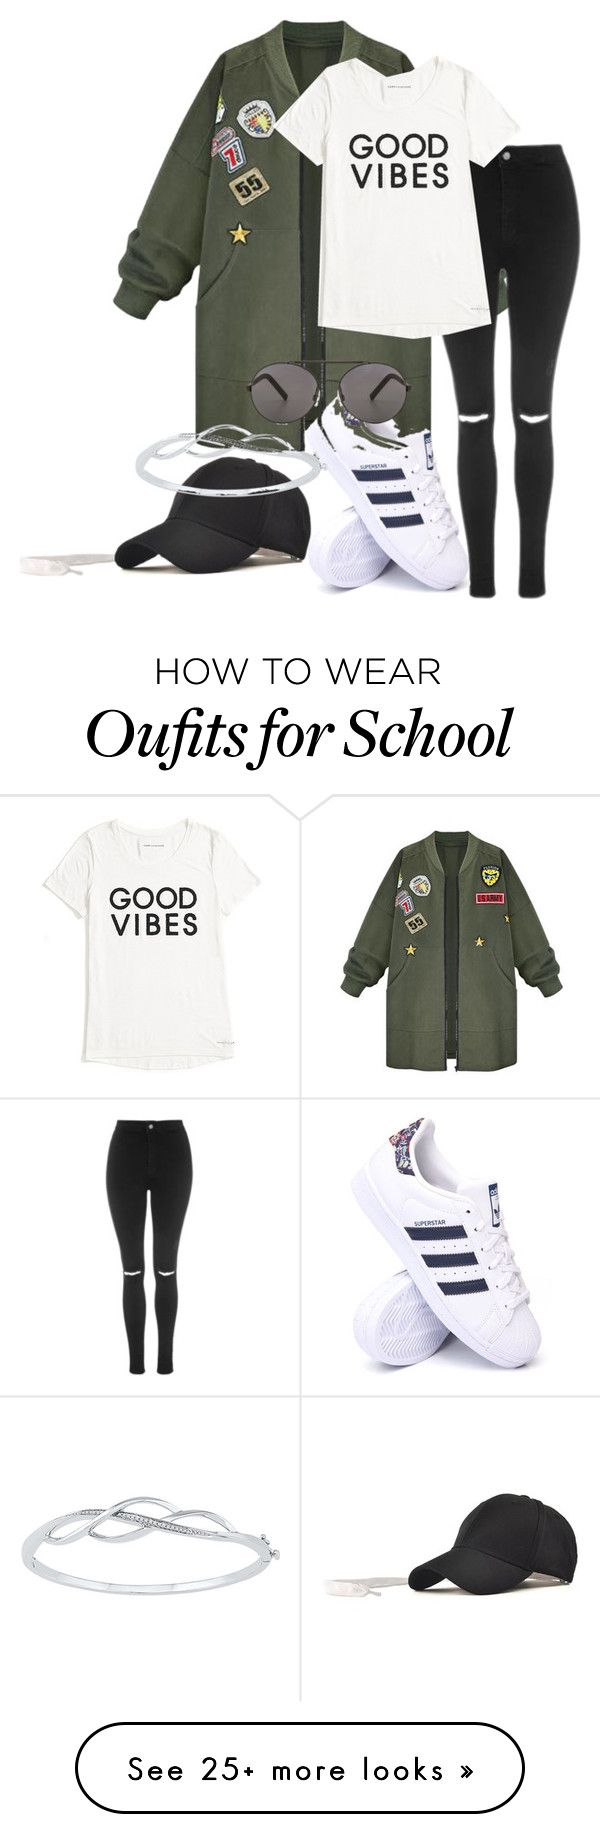 """2. Cool for School"" by srybuttnotsry on Polyvore featuring WithChic, Topshop, adidas, Tommy Hilfiger and Seafolly"